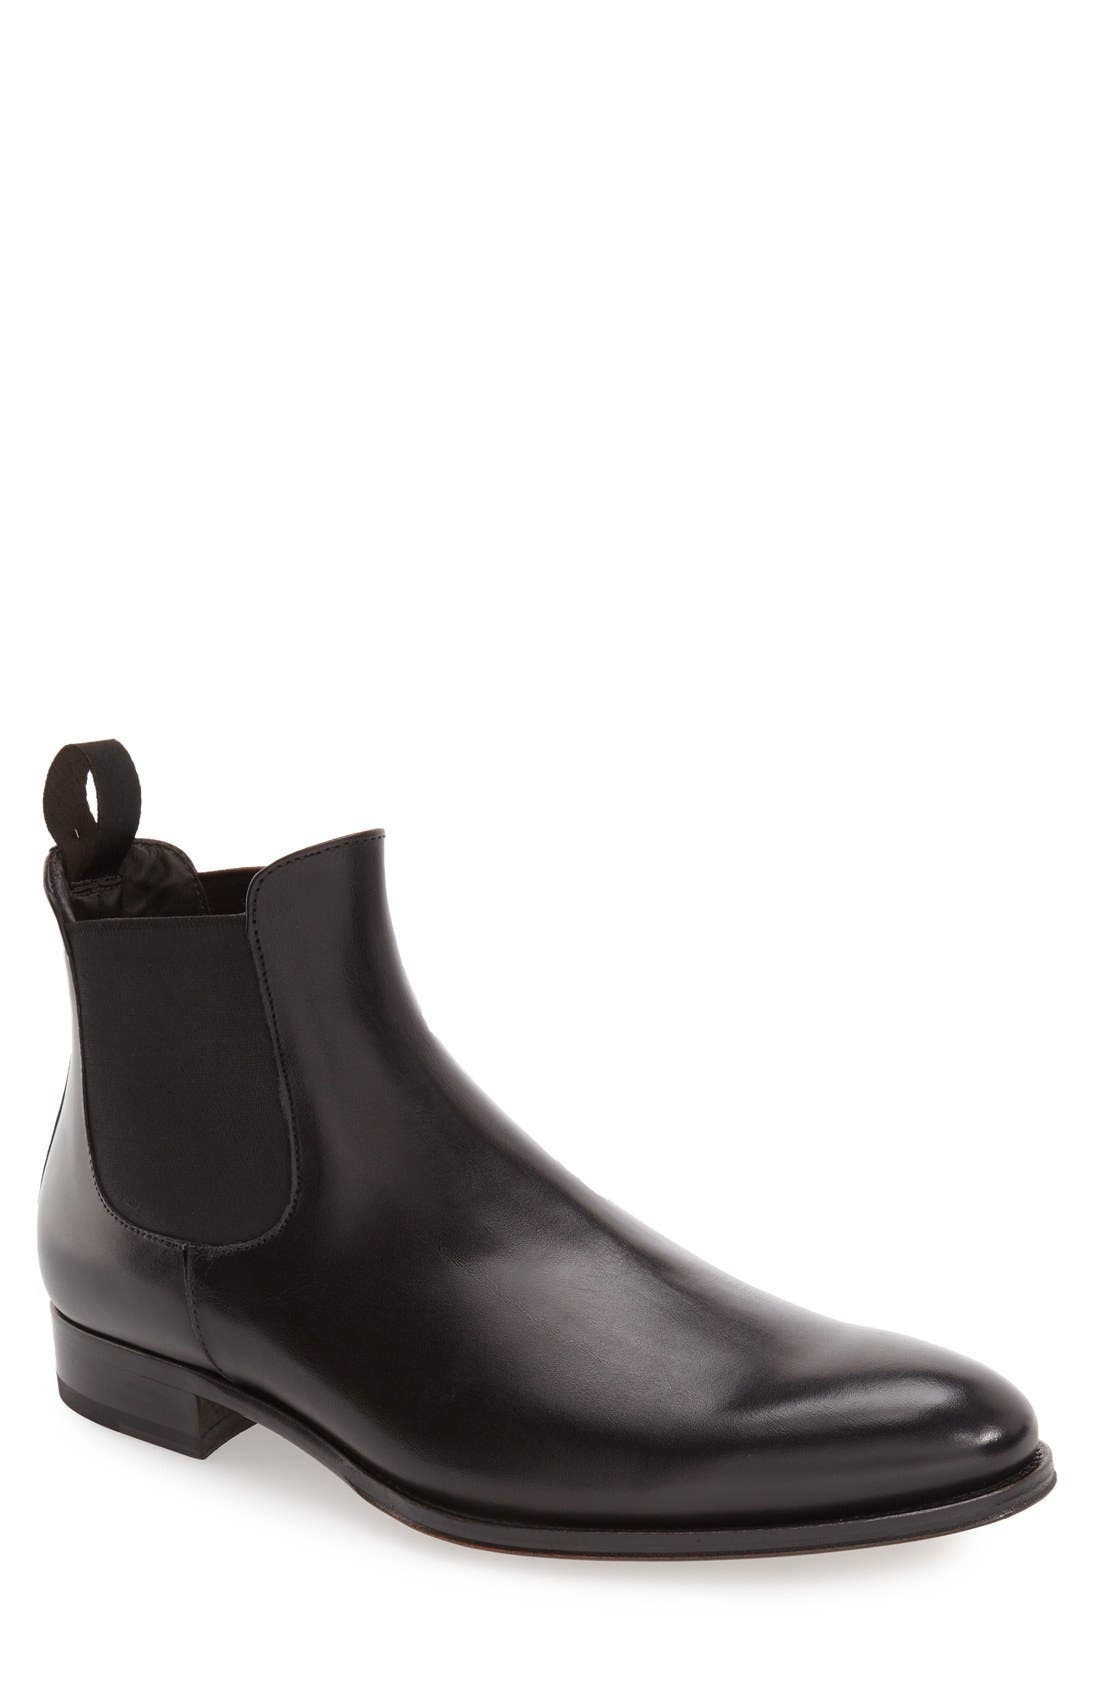 Toby Chelsea Boot,                         Main,                         color, BLACK LEATHER